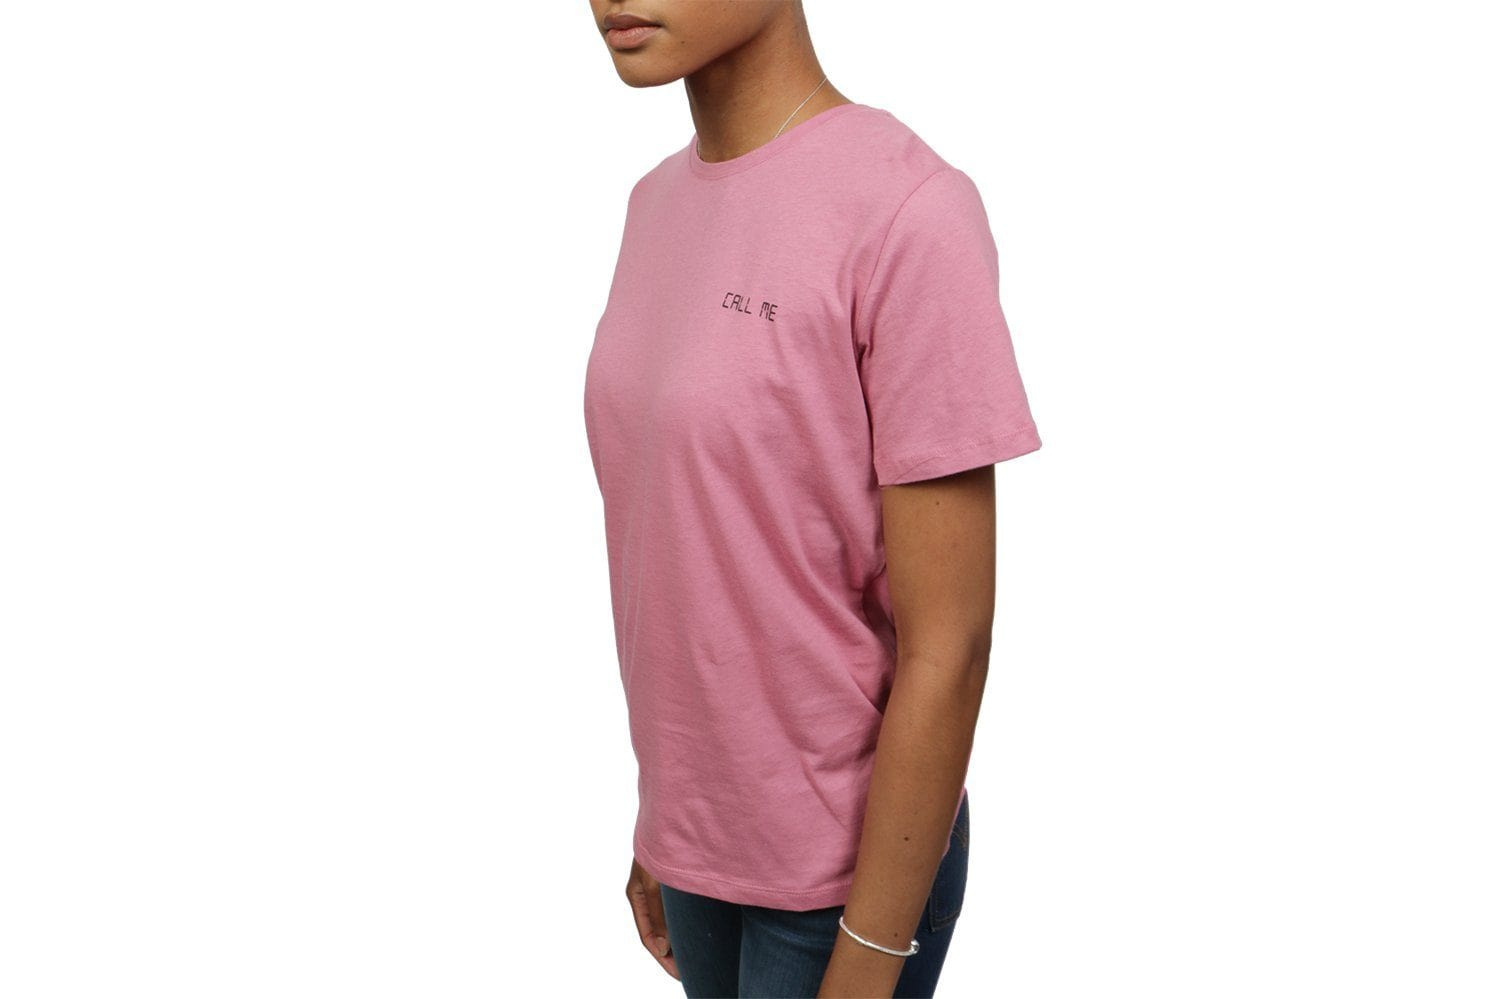 CALL ME TEE WOMENS SOFTGOODS NAKD